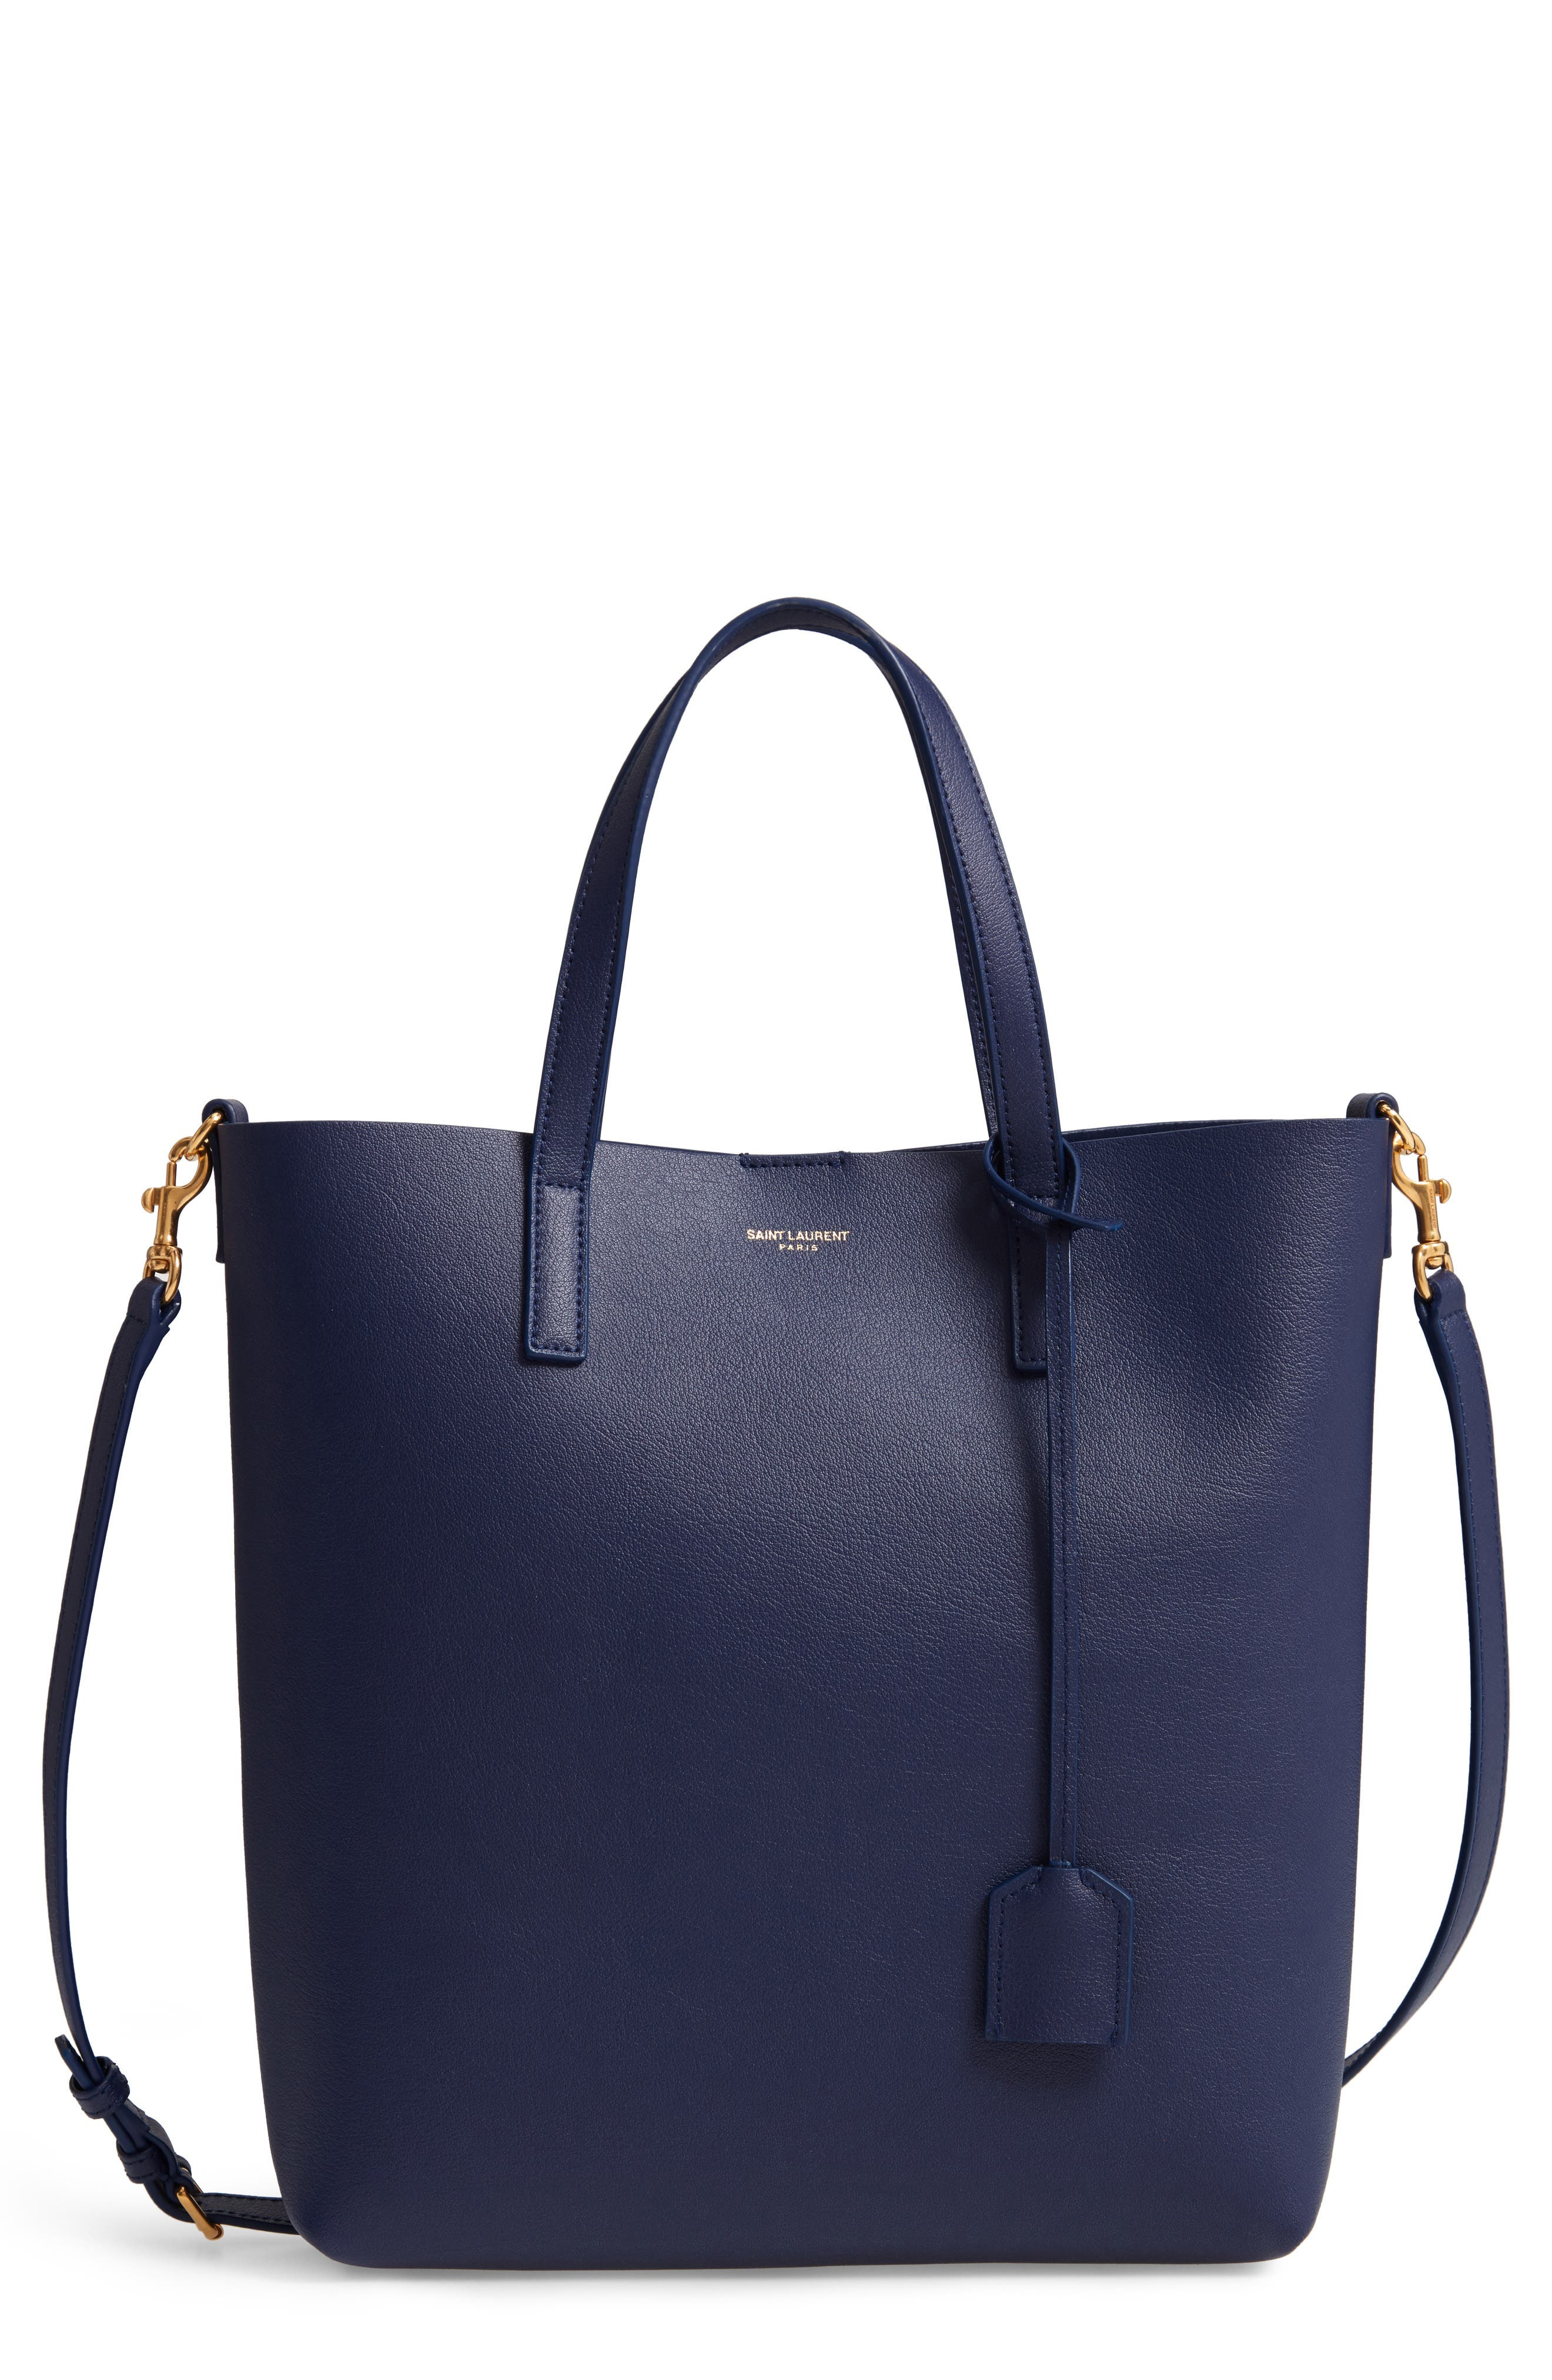 Toy Shopping Leather Tote,                             Main thumbnail 1, color,                             SAPPHIRE